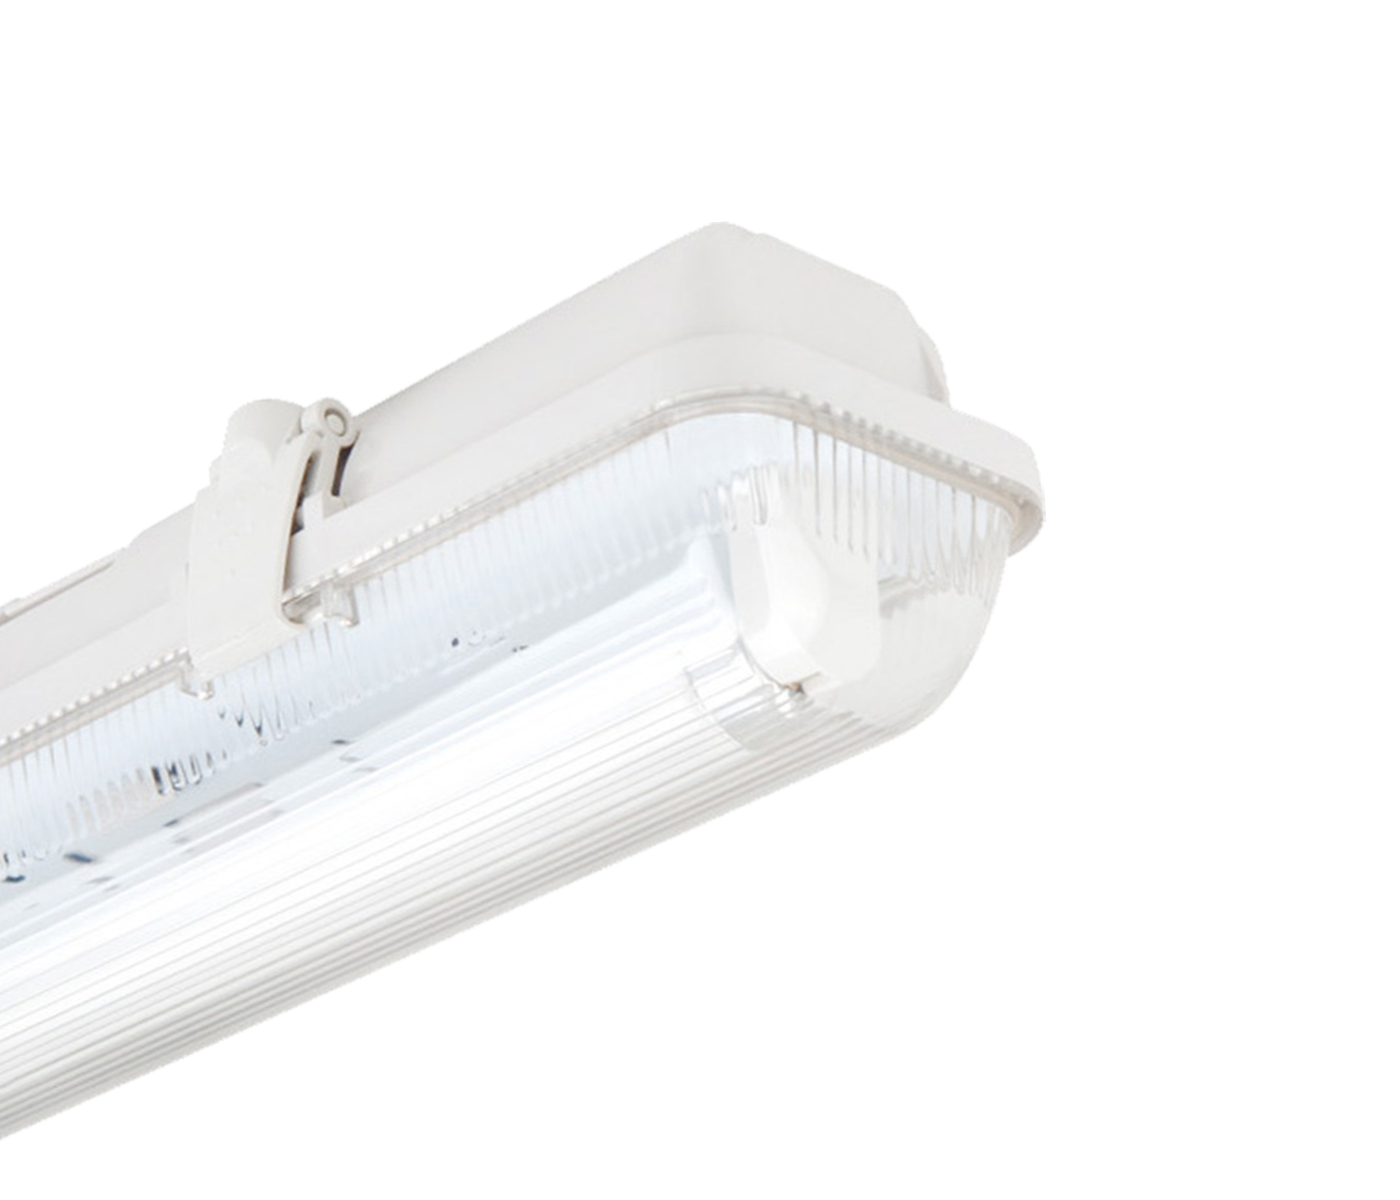 T8 vapor tight light fixtures